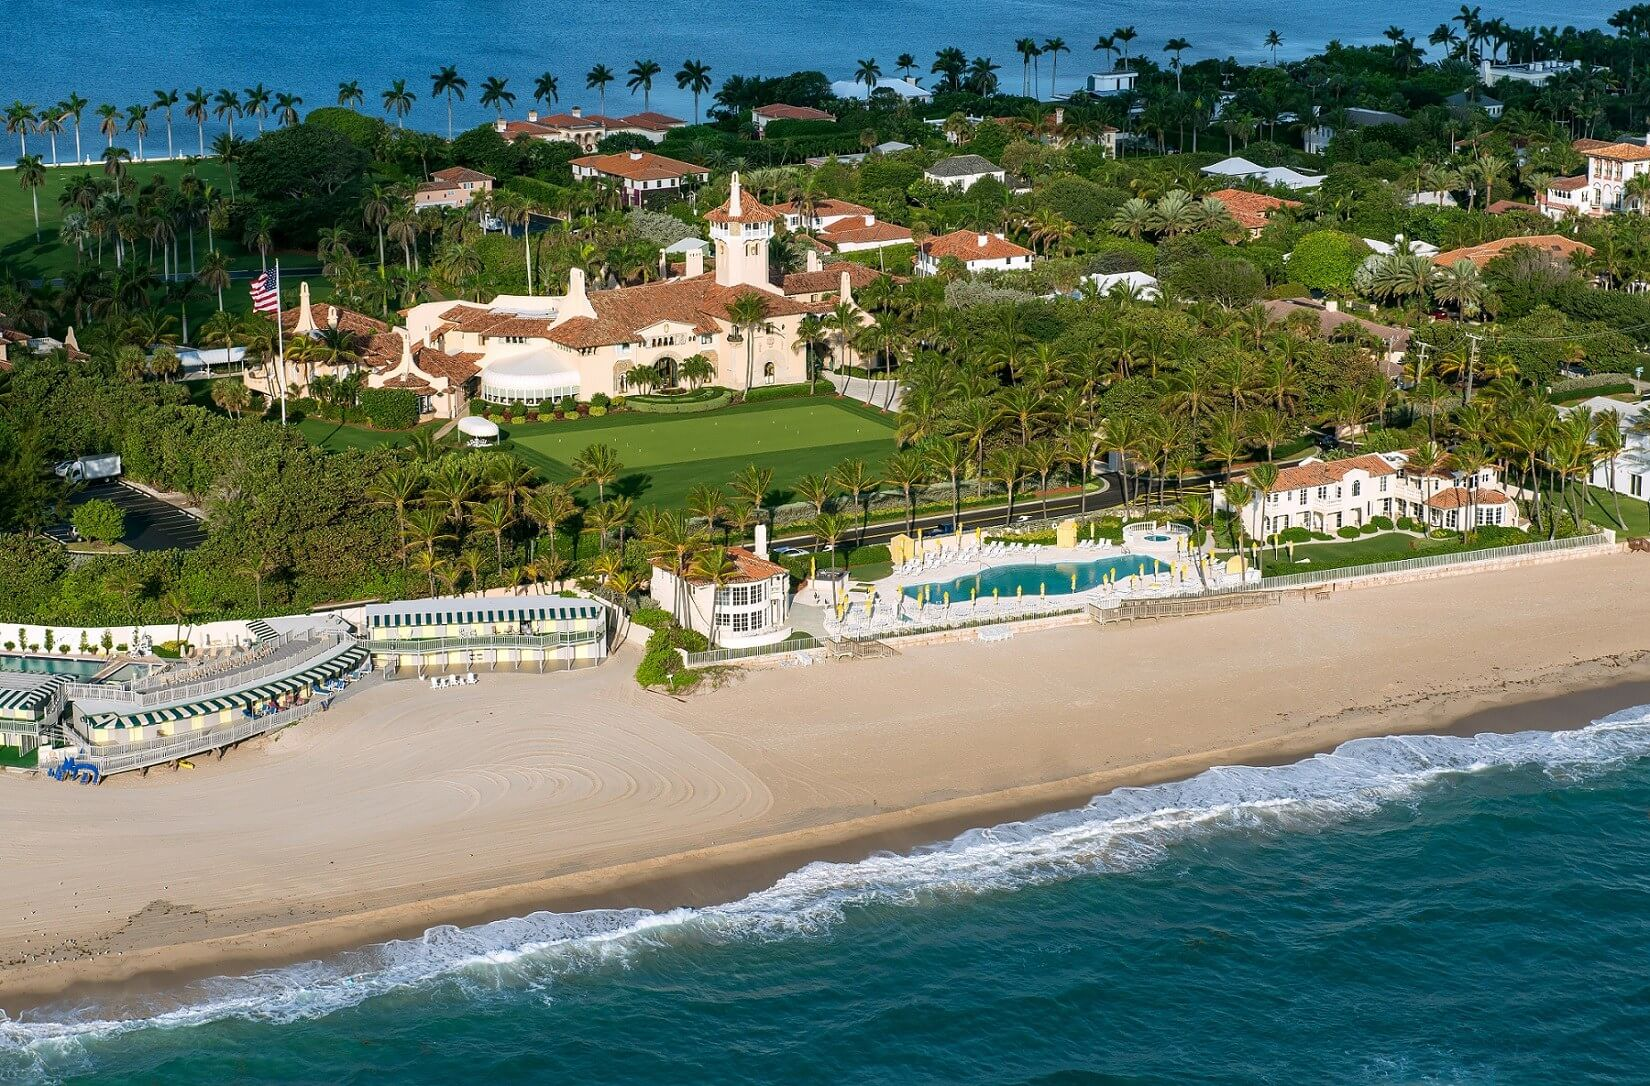 Chinese woman carrying malware-loaded USB drive arrested at Trump's Mar-a-Lago resort